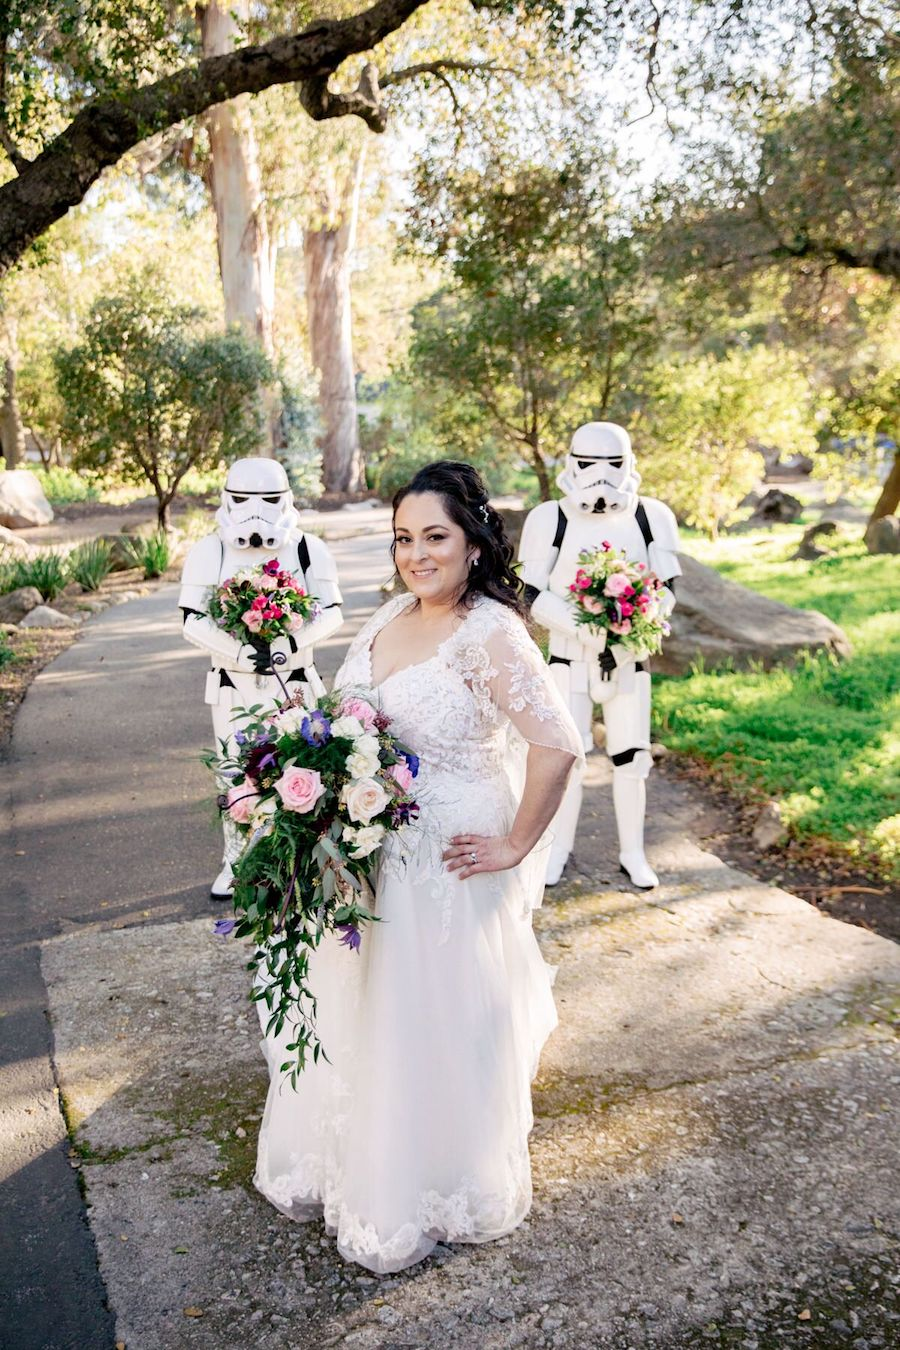 burlap-bordeaux-star-wars-wedding-santa-barbara-3.jpg